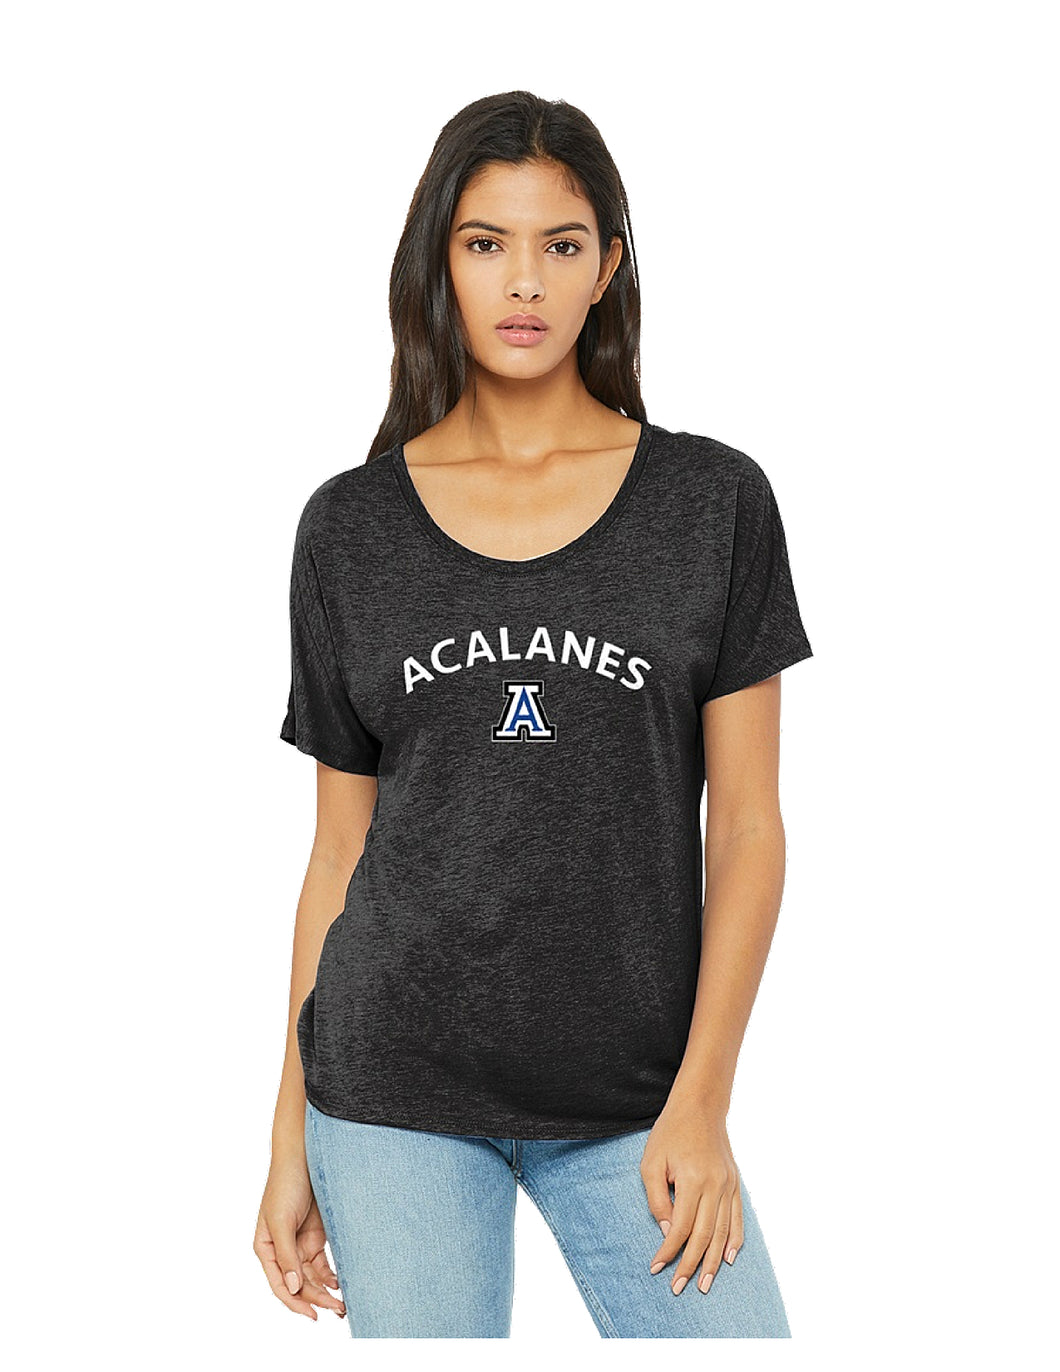 BELLA+CANVAS ® Women's Slouchy Tee Charcoal-Black Triblend with Screen Printed Arch Logo